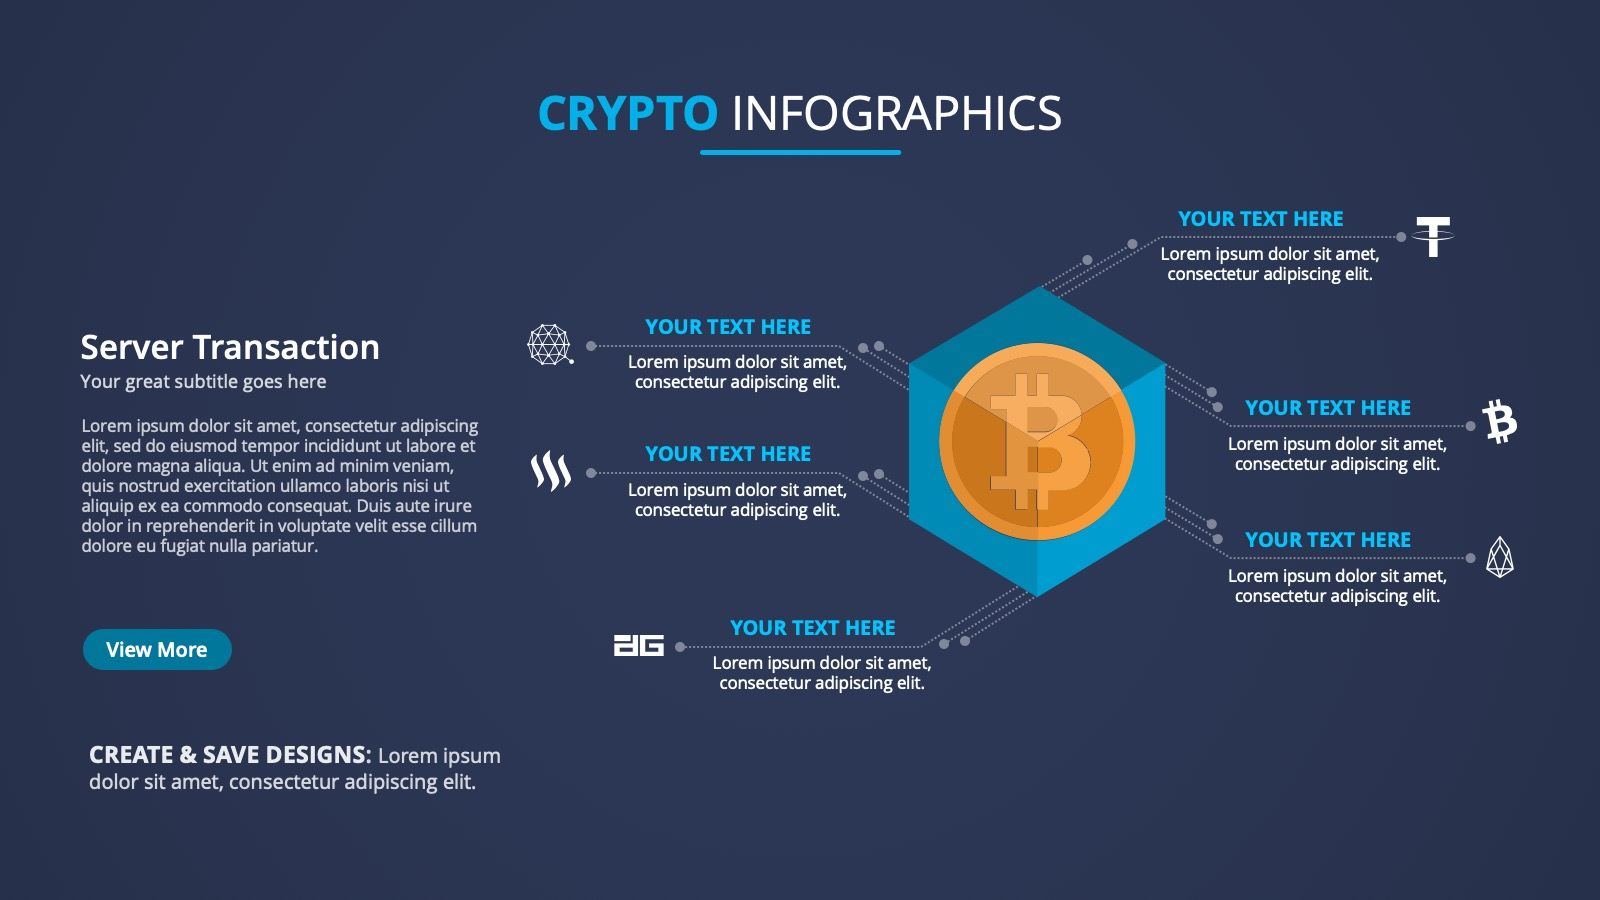 BITCOIN TRANSACTION INFOGRAPHIC